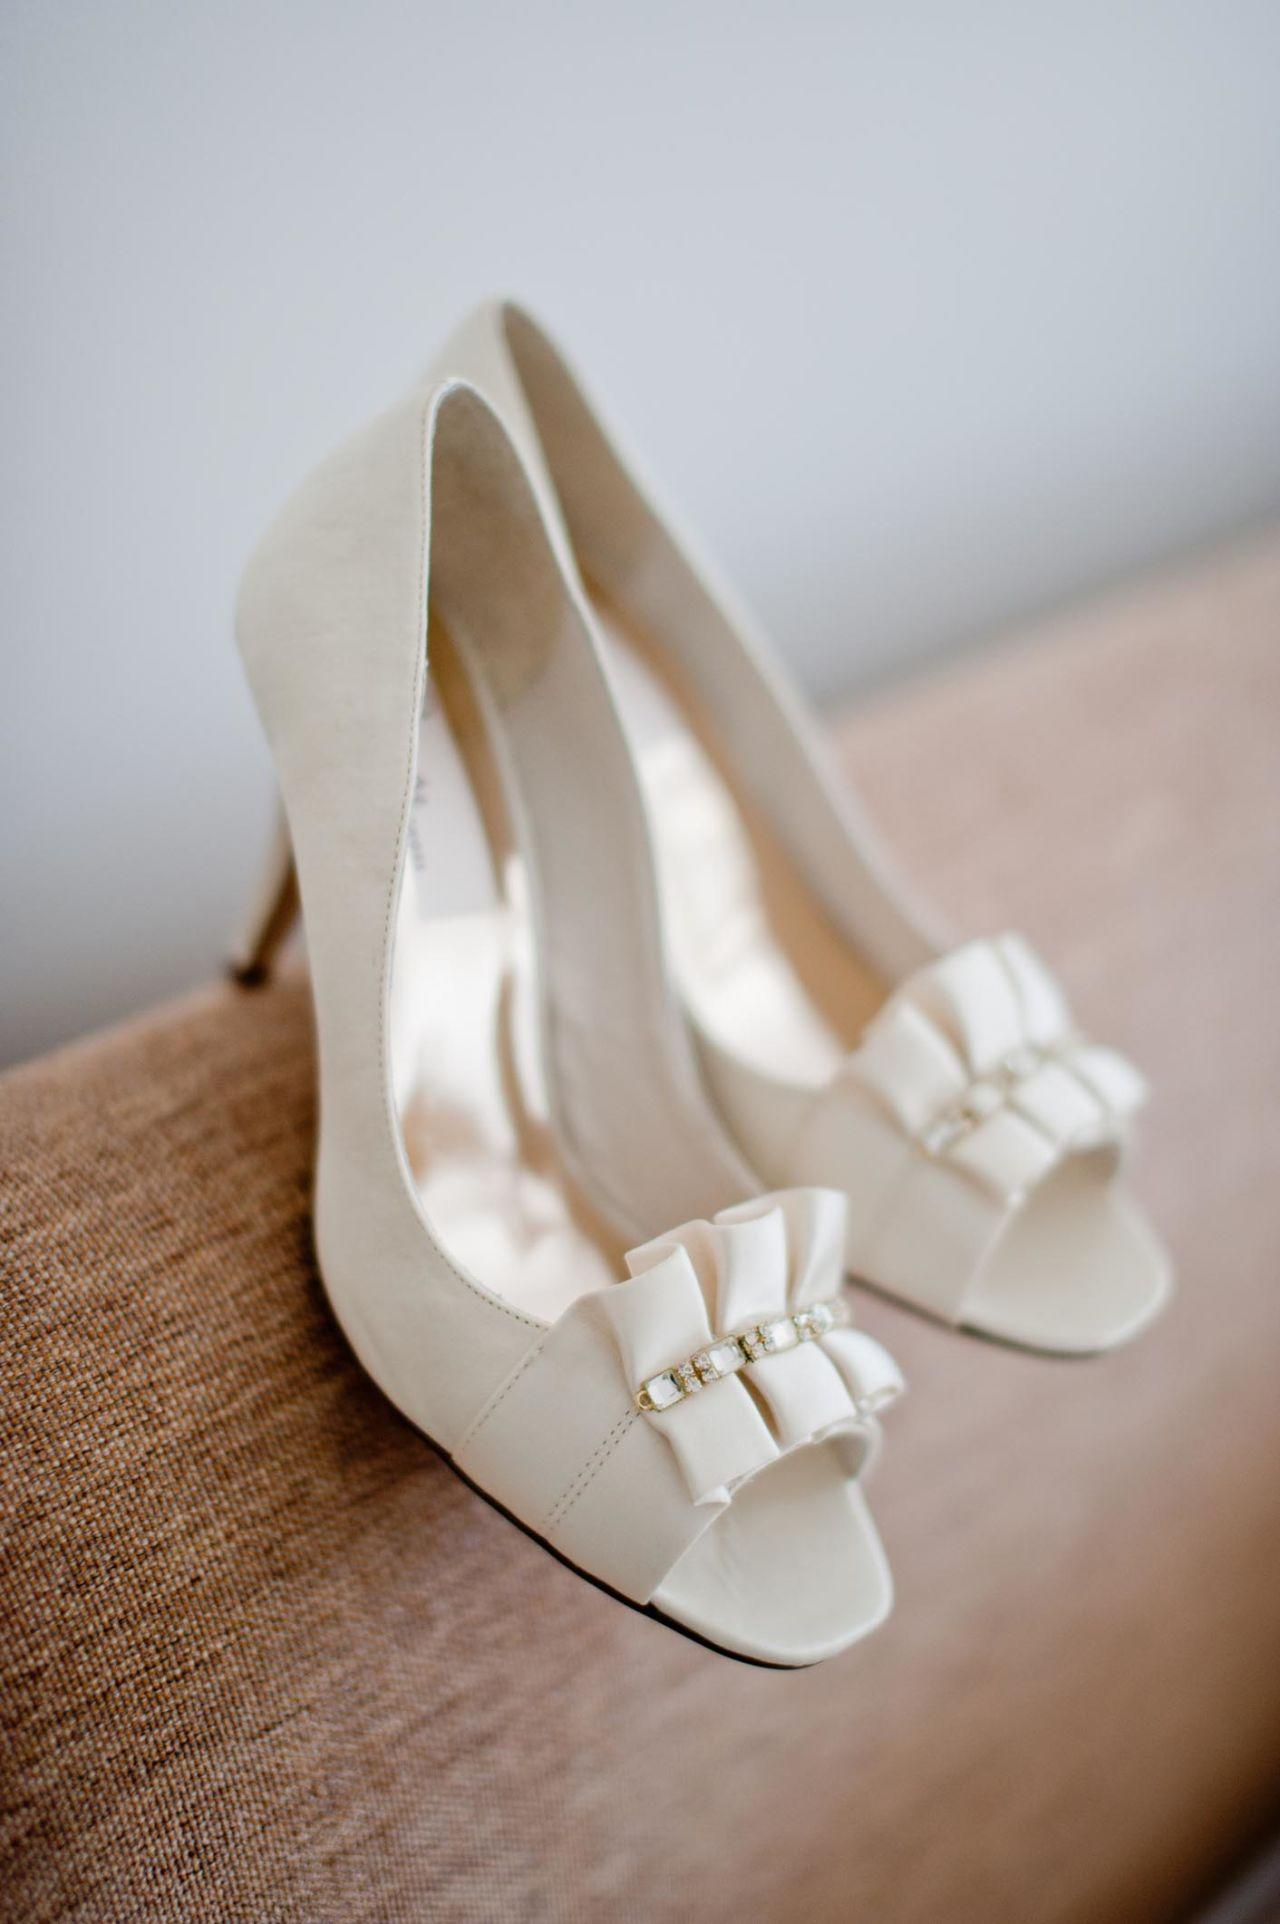 """<p>Listen, your wedding day is like running a marathon, which is why Neusse says proper footwear is essential. """"Bring two pairs of footwear, wear the fancy one for pictures, then switch to comfy ones for walking and other duties,"""" she says. No one can see what you're wearing under your long dress anyway.</p>"""